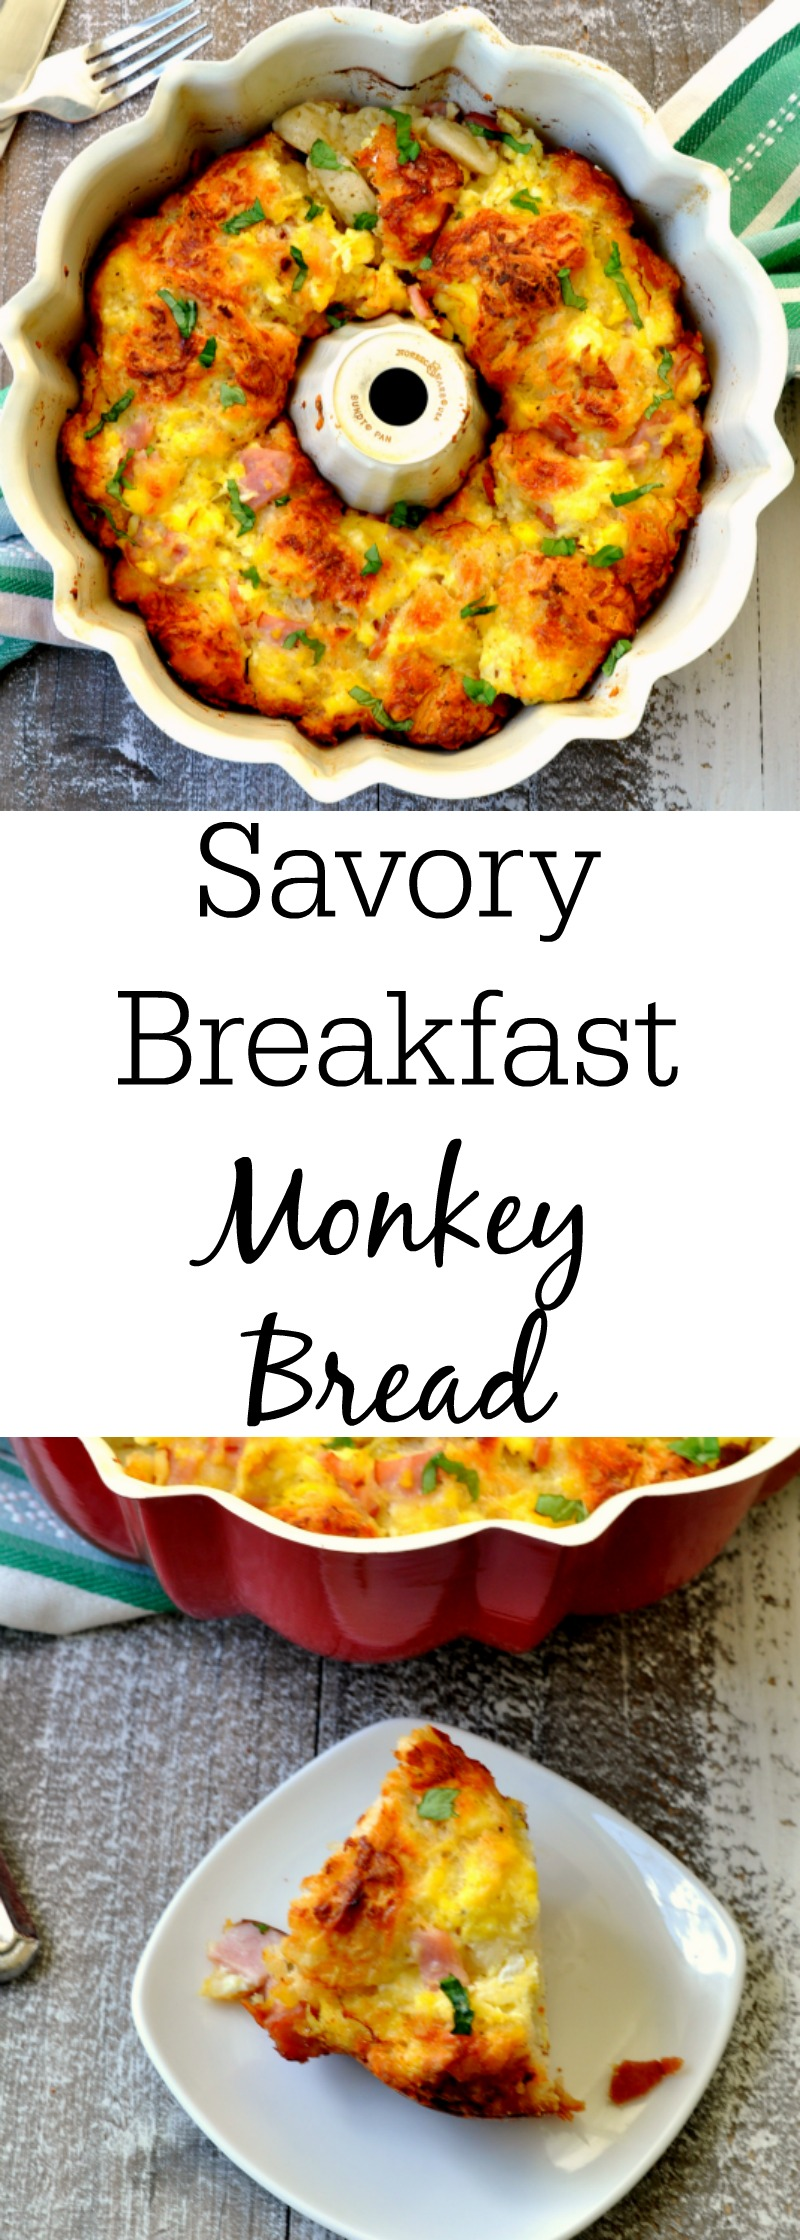 Savory Breakfast Monkey Bread - Make Monkey Bread With Biscuits Hack